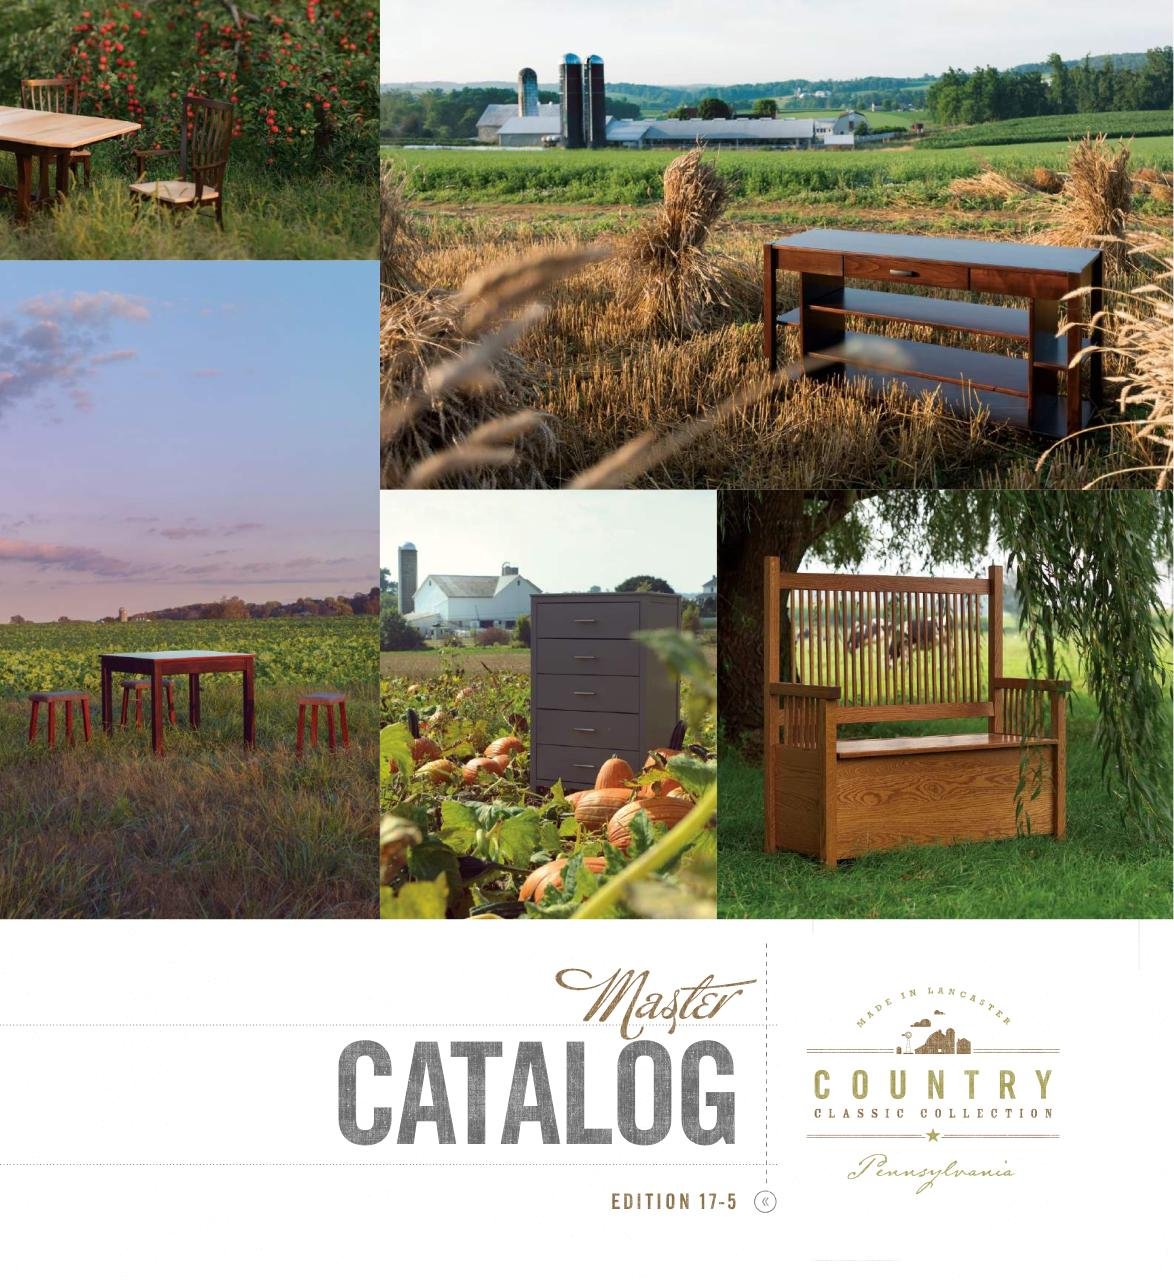 2017_CountryClassic_FurnitureCatalog.compressed.pdf - page 1/176